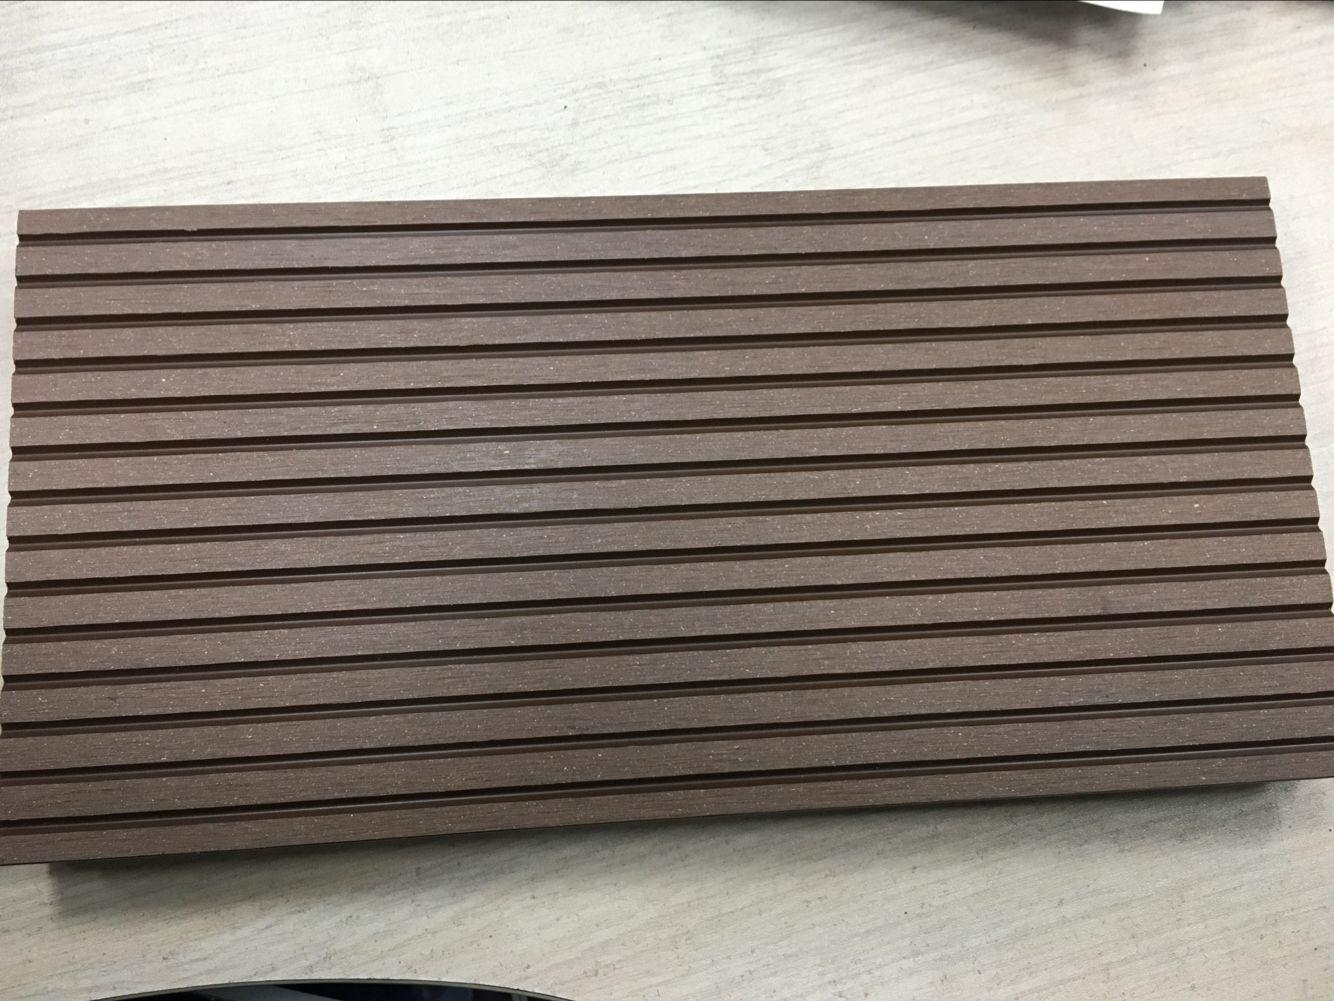 Waterproof and non-cracked wpc outdoor and indoor decking 4